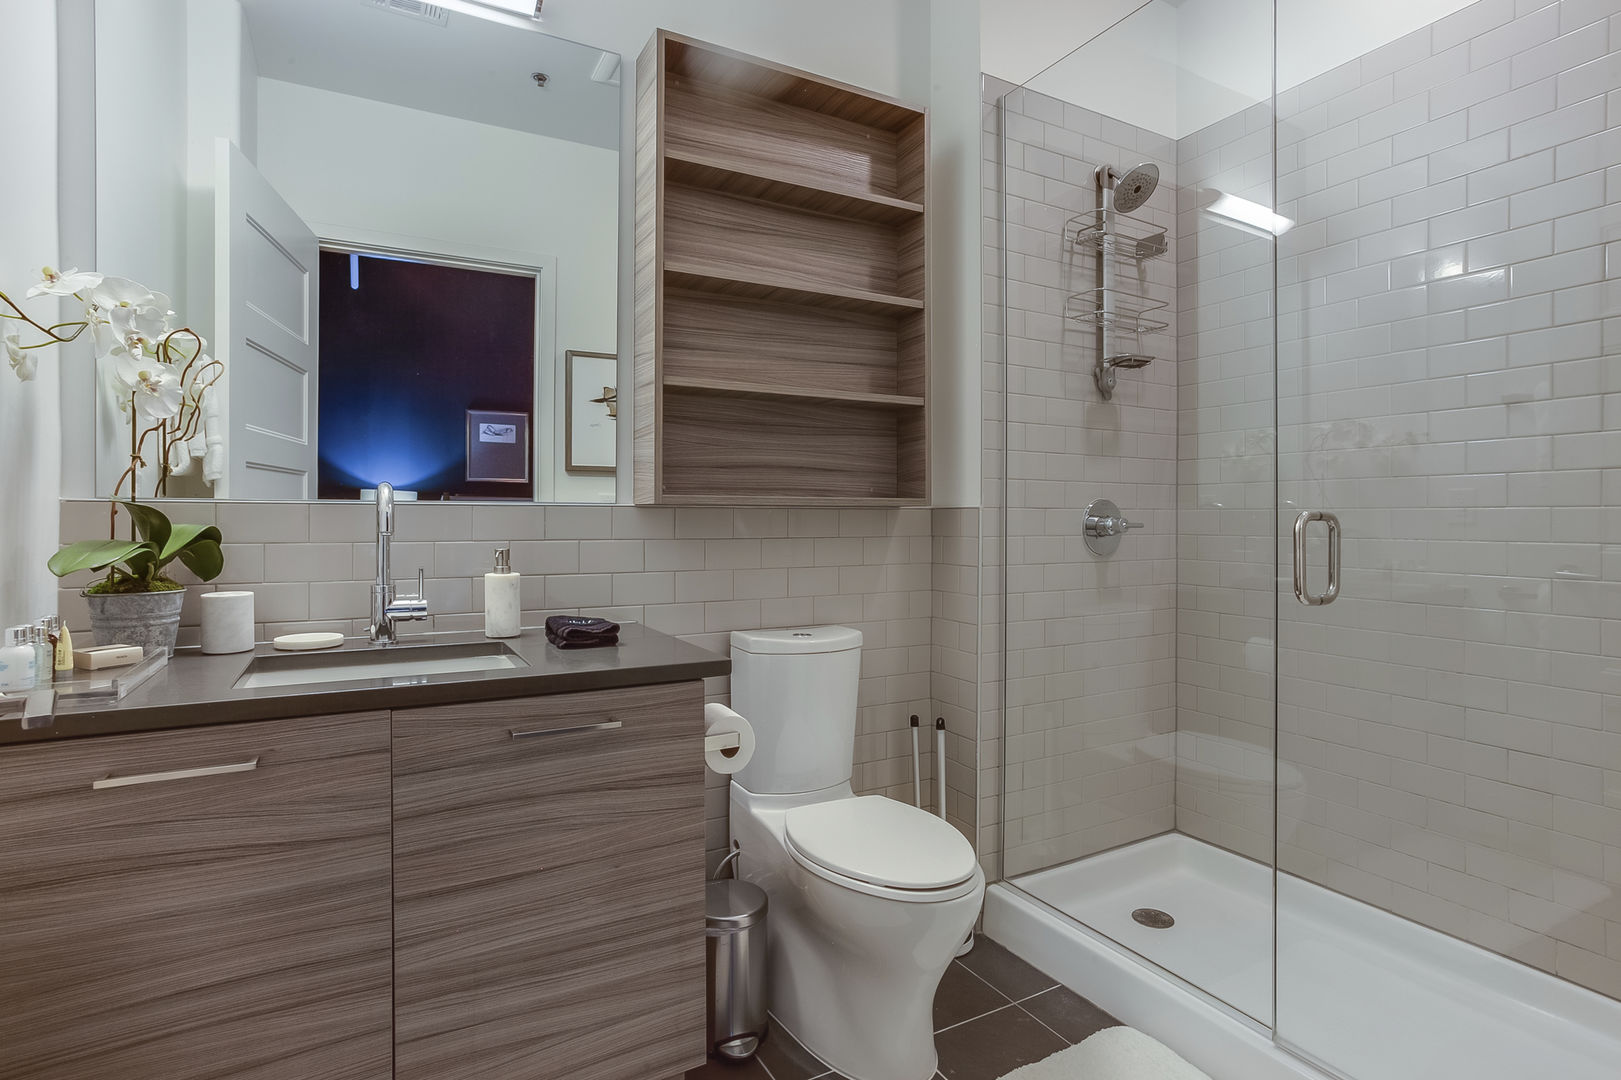 Master Bathroom of this Apartment Near Ponce City Market with vanity sink, toilet, and walk-in shower.